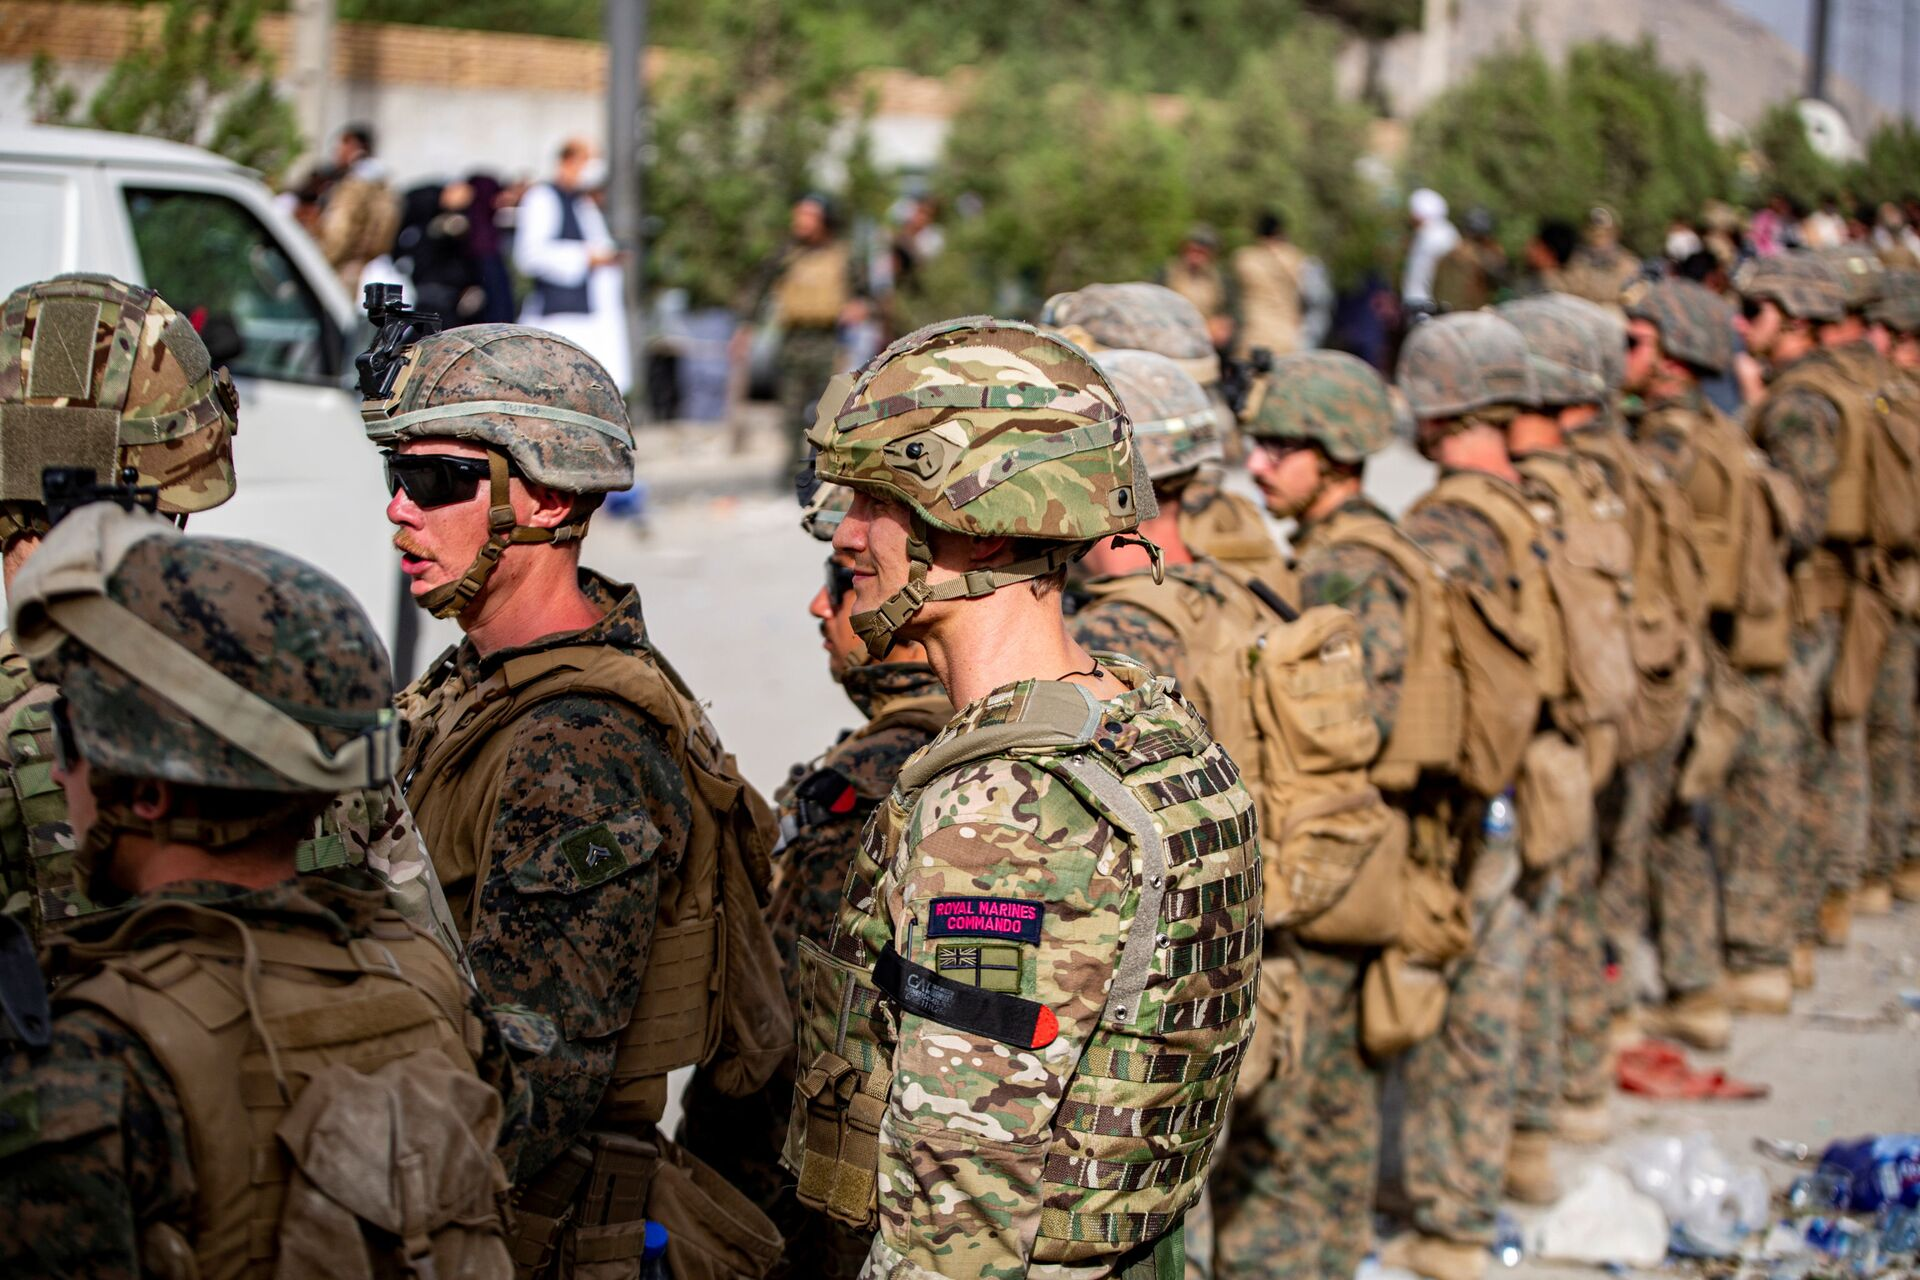 British Royal Marine Commandos and U.S. Marines assigned to the 24th Marine Expeditionary Unit work at an Evacuation Control Center (ECC) during an evacuation at Hamid Karzai International Airport, Kabul, Afghanistan, August 18, 2021 - Sputnik International, 1920, 07.09.2021